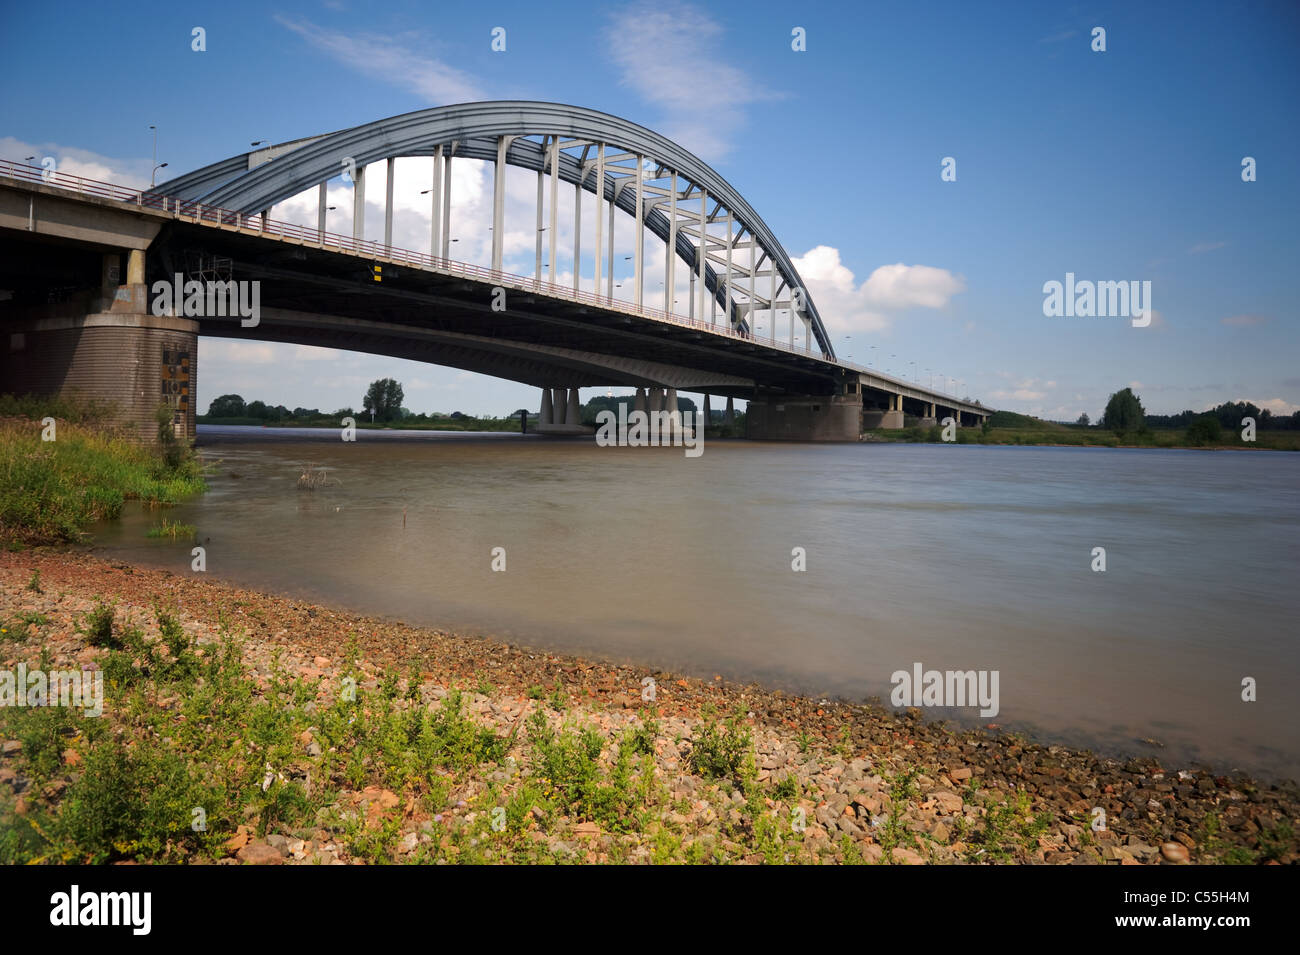 Bridge crossing river Lek with shore in front - Stock Image